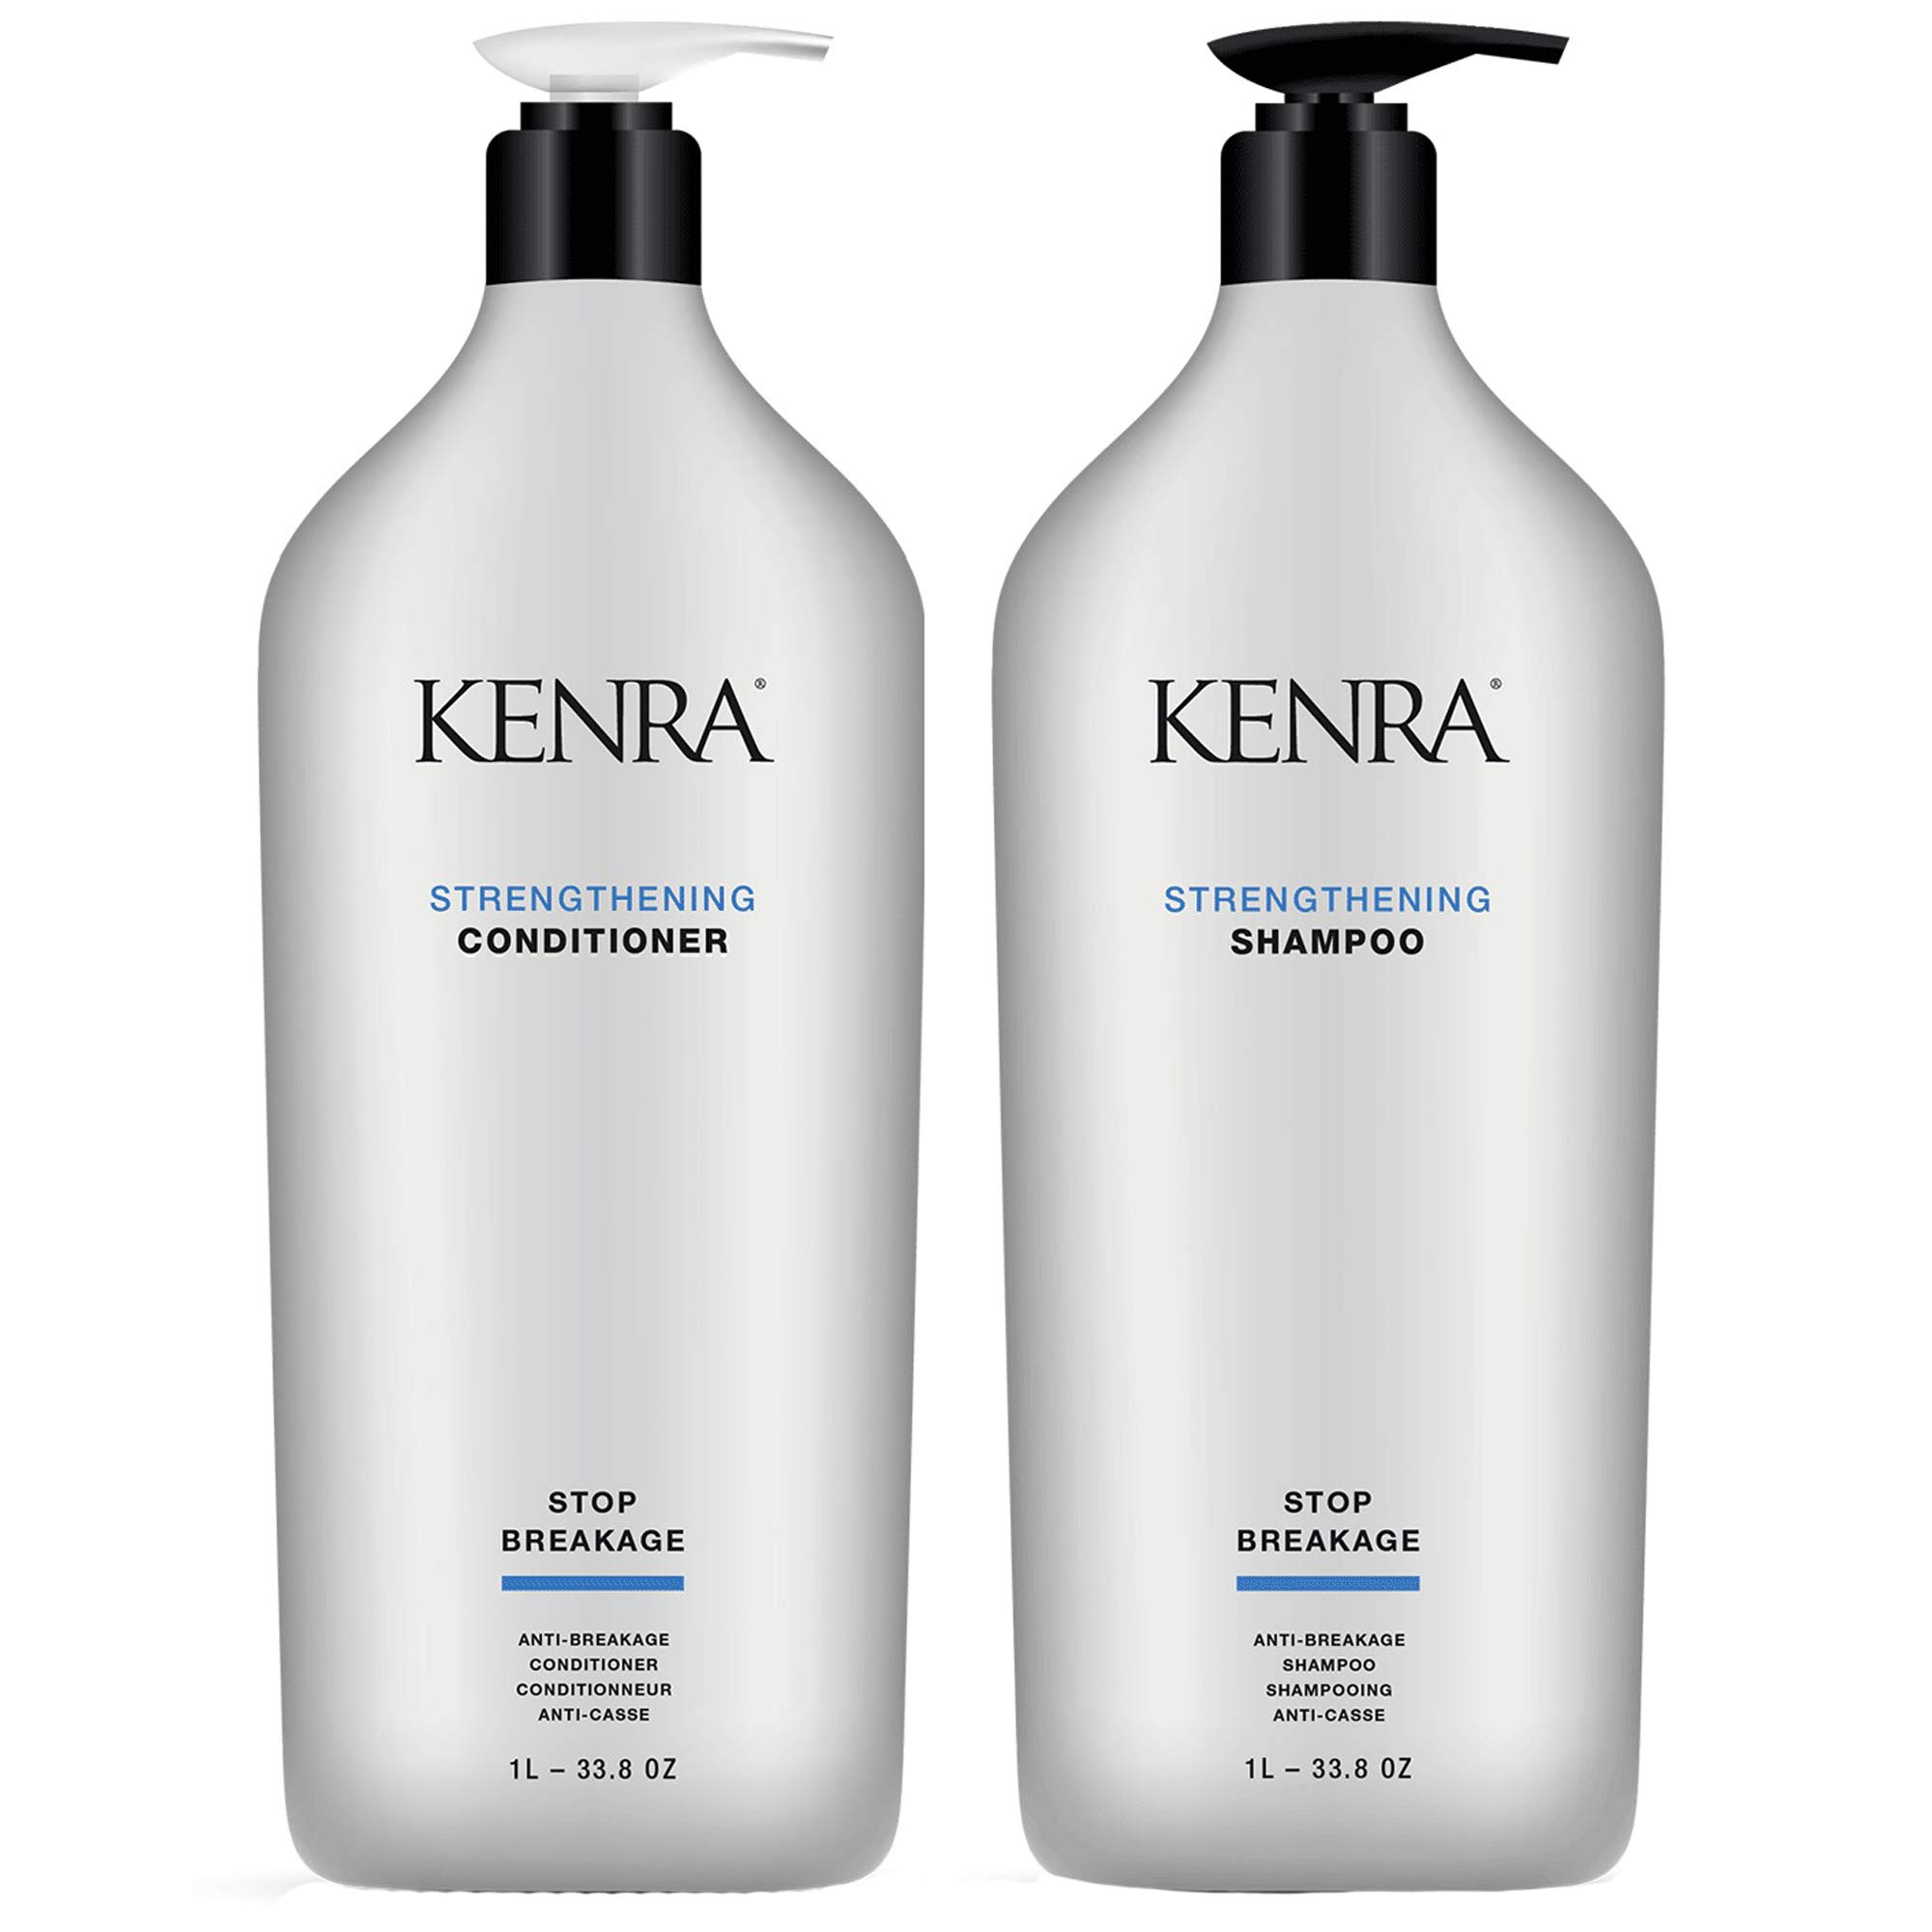 Kenra Strengthening Shampoo Conditioner Liter Duo (33 oz) by Kenra